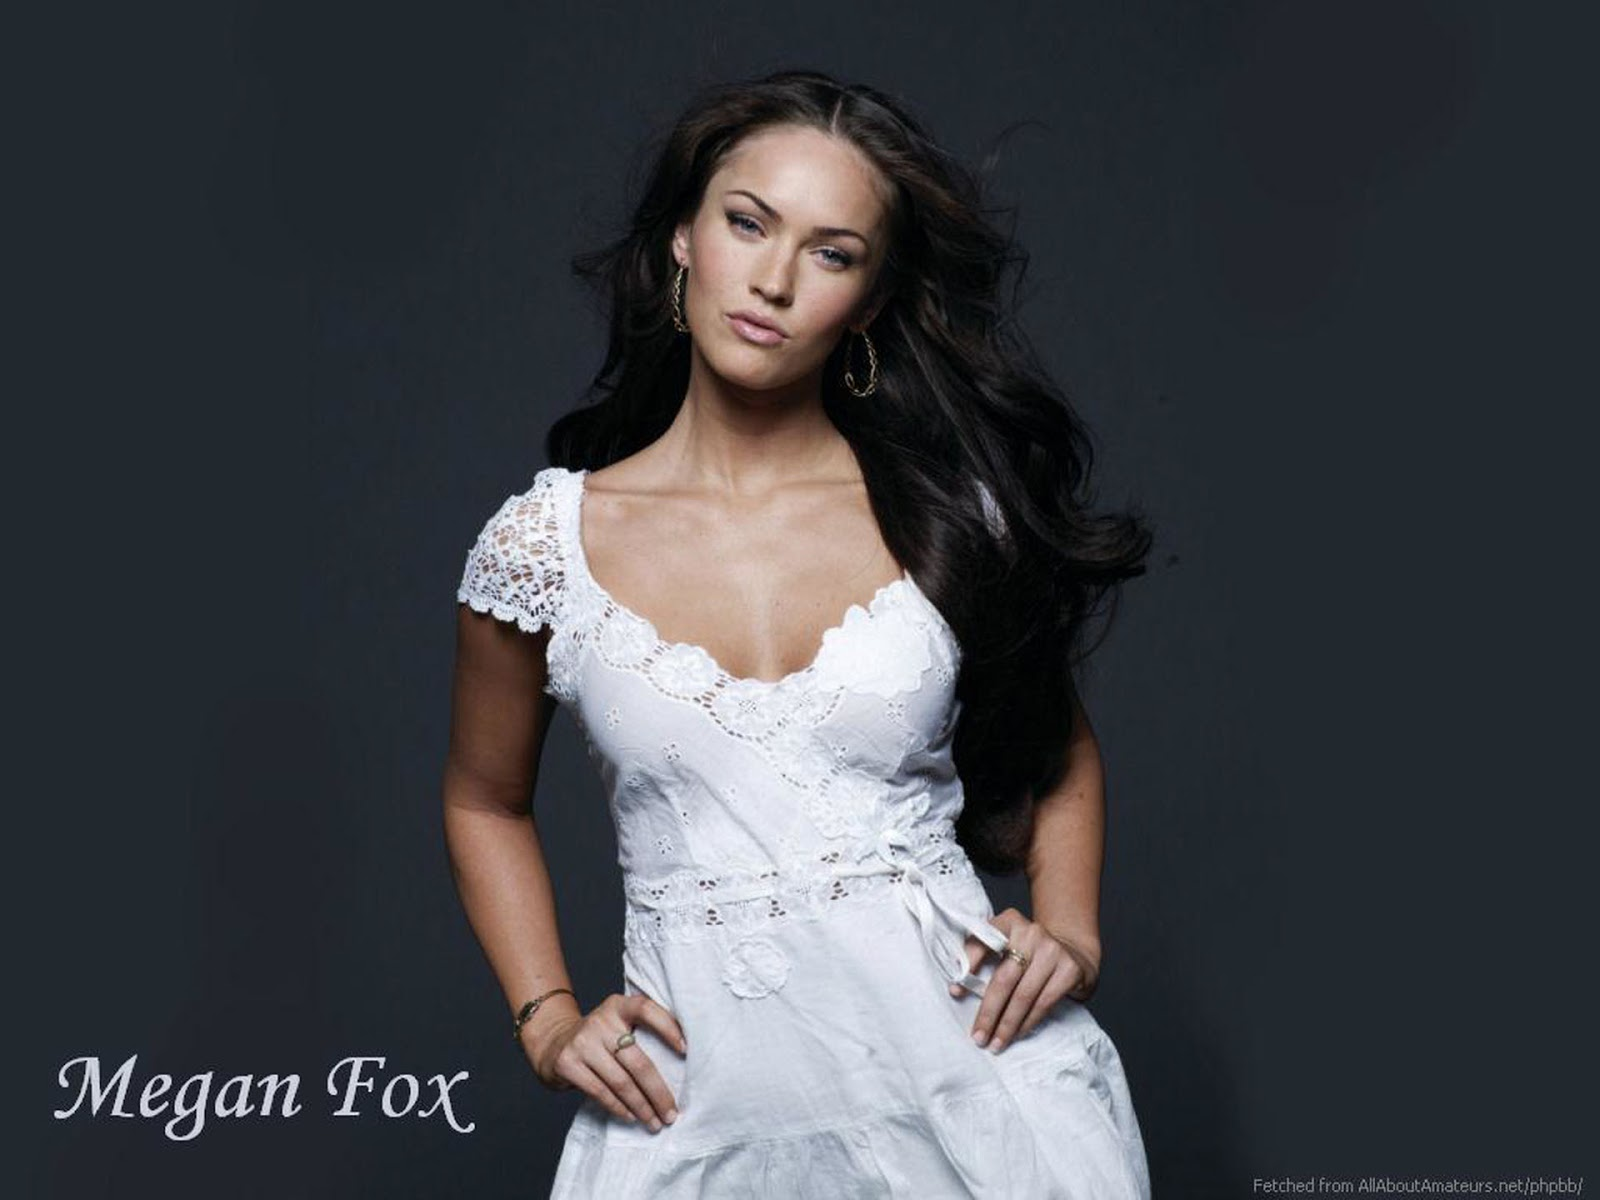 http://1.bp.blogspot.com/-EETCiXcO8GY/UNWAAJNU41I/AAAAAAAApno/X2tZioxJkd0/s1600/Megan+Fox+-+Hot+HD+Wallpapers+0013.jpg